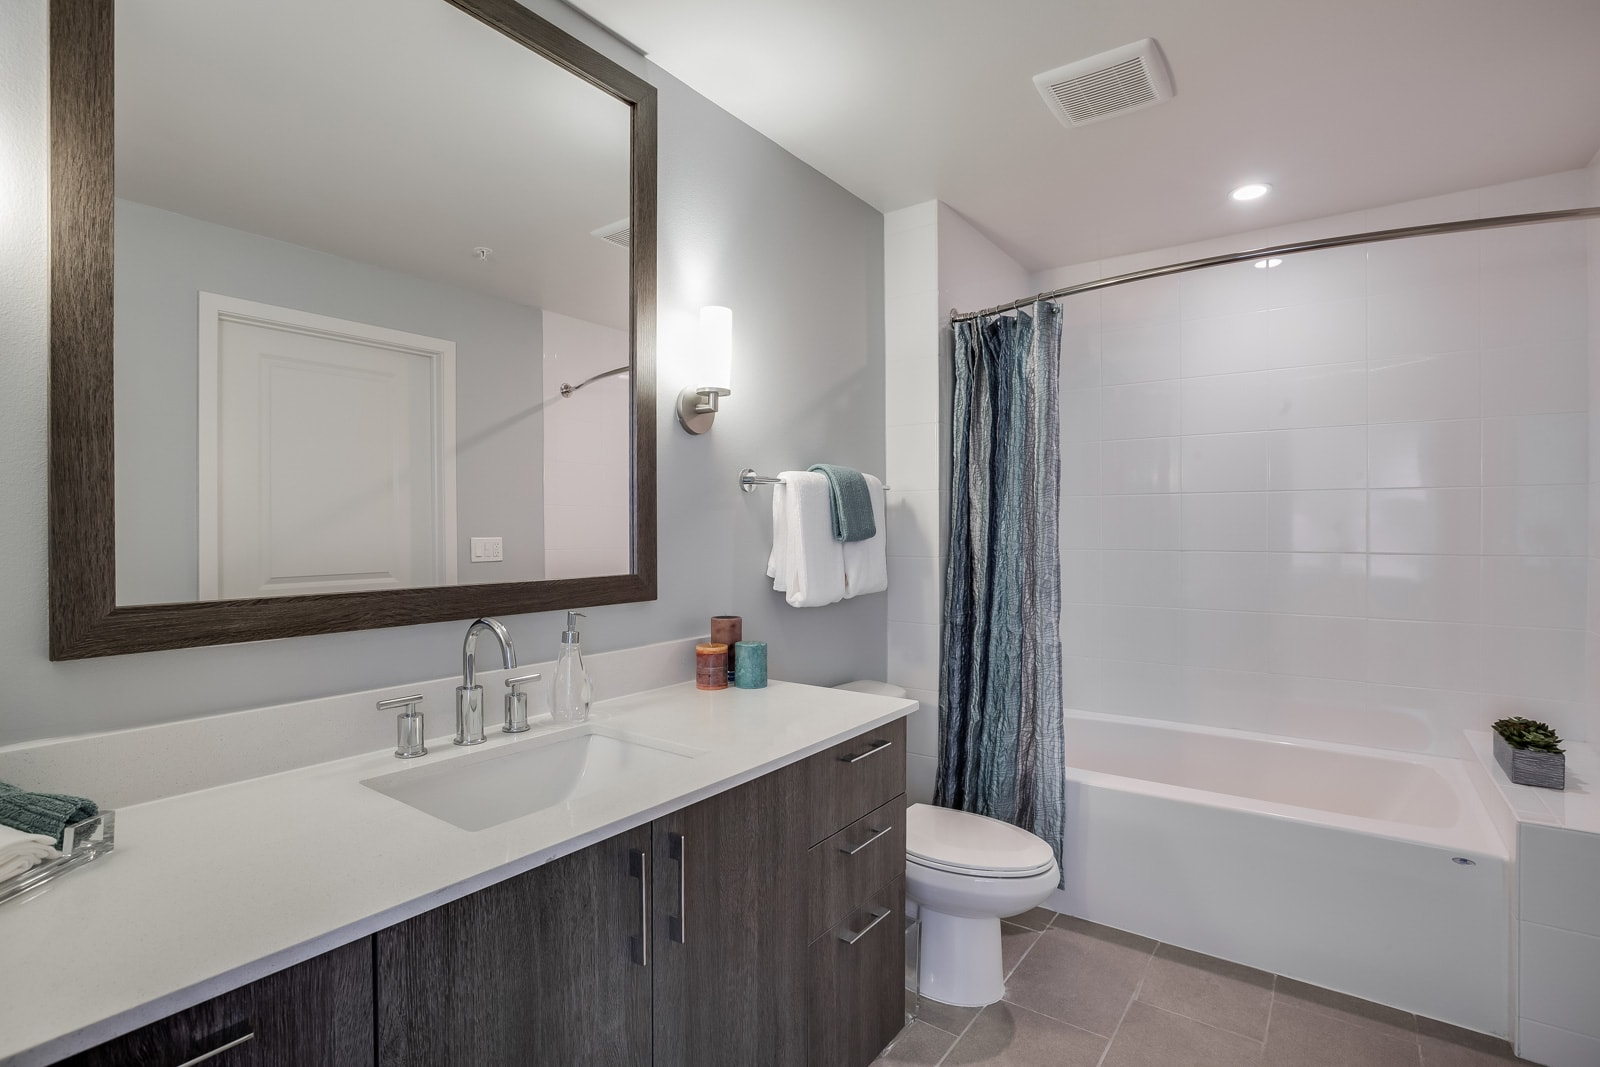 Spa-Inspired Bathrooms at Allure by Windsor, Boca Raton, FL